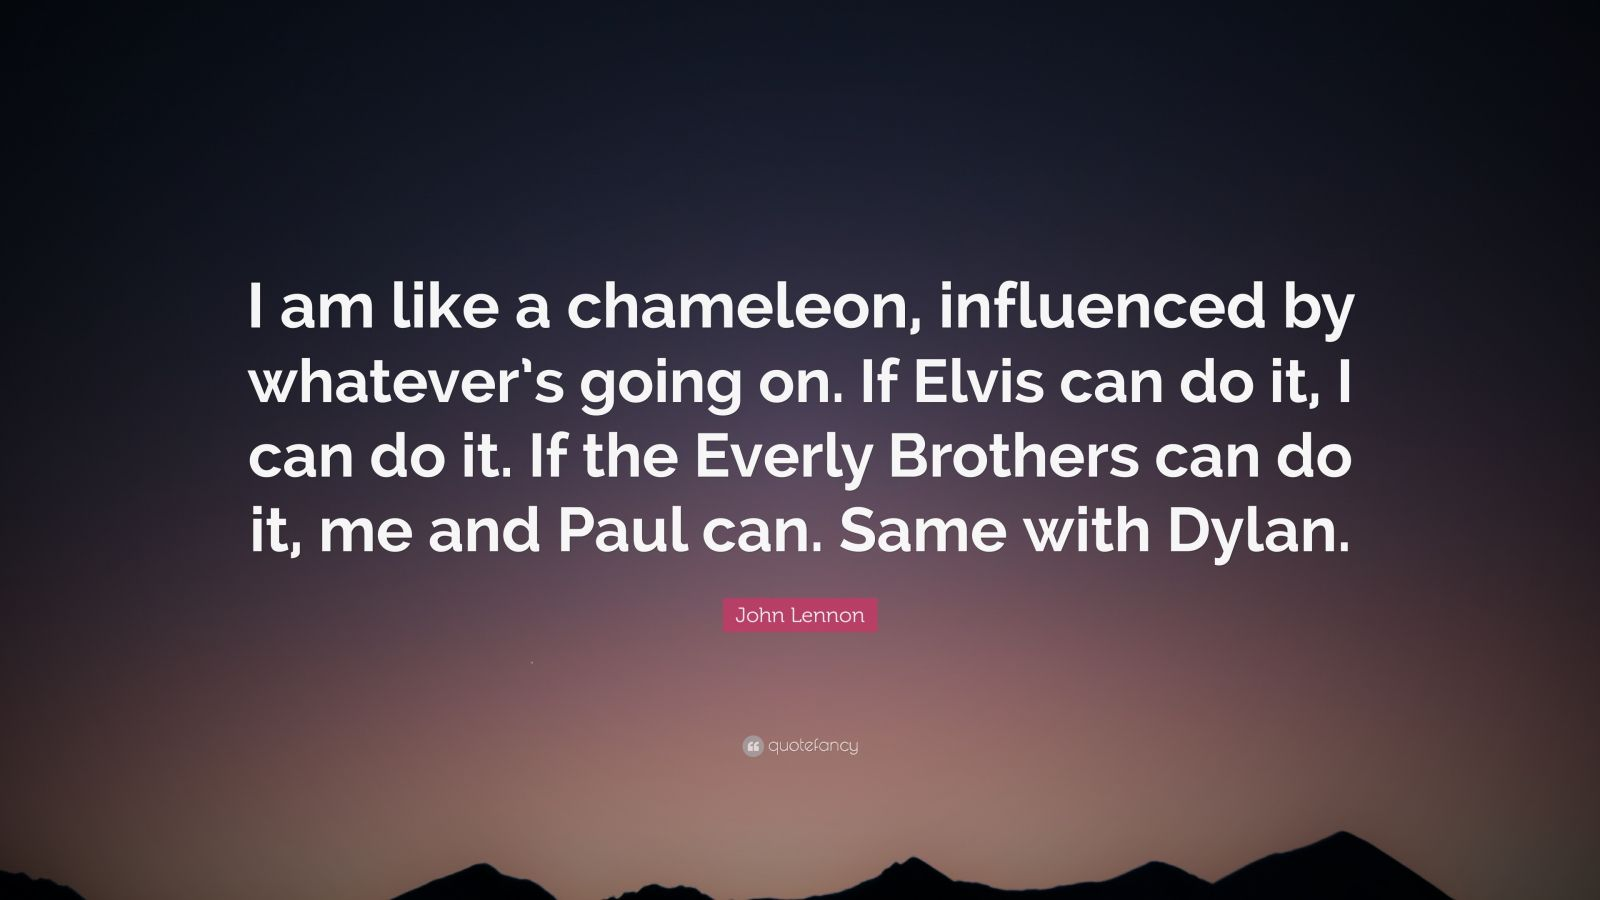 "John Lennon Quote: ""I am like a chameleon, influenced by whatever's going on. If Elvis can do it, I can do it. If the Everly Brothers can do it, me and Paul can. Same with Dylan."""